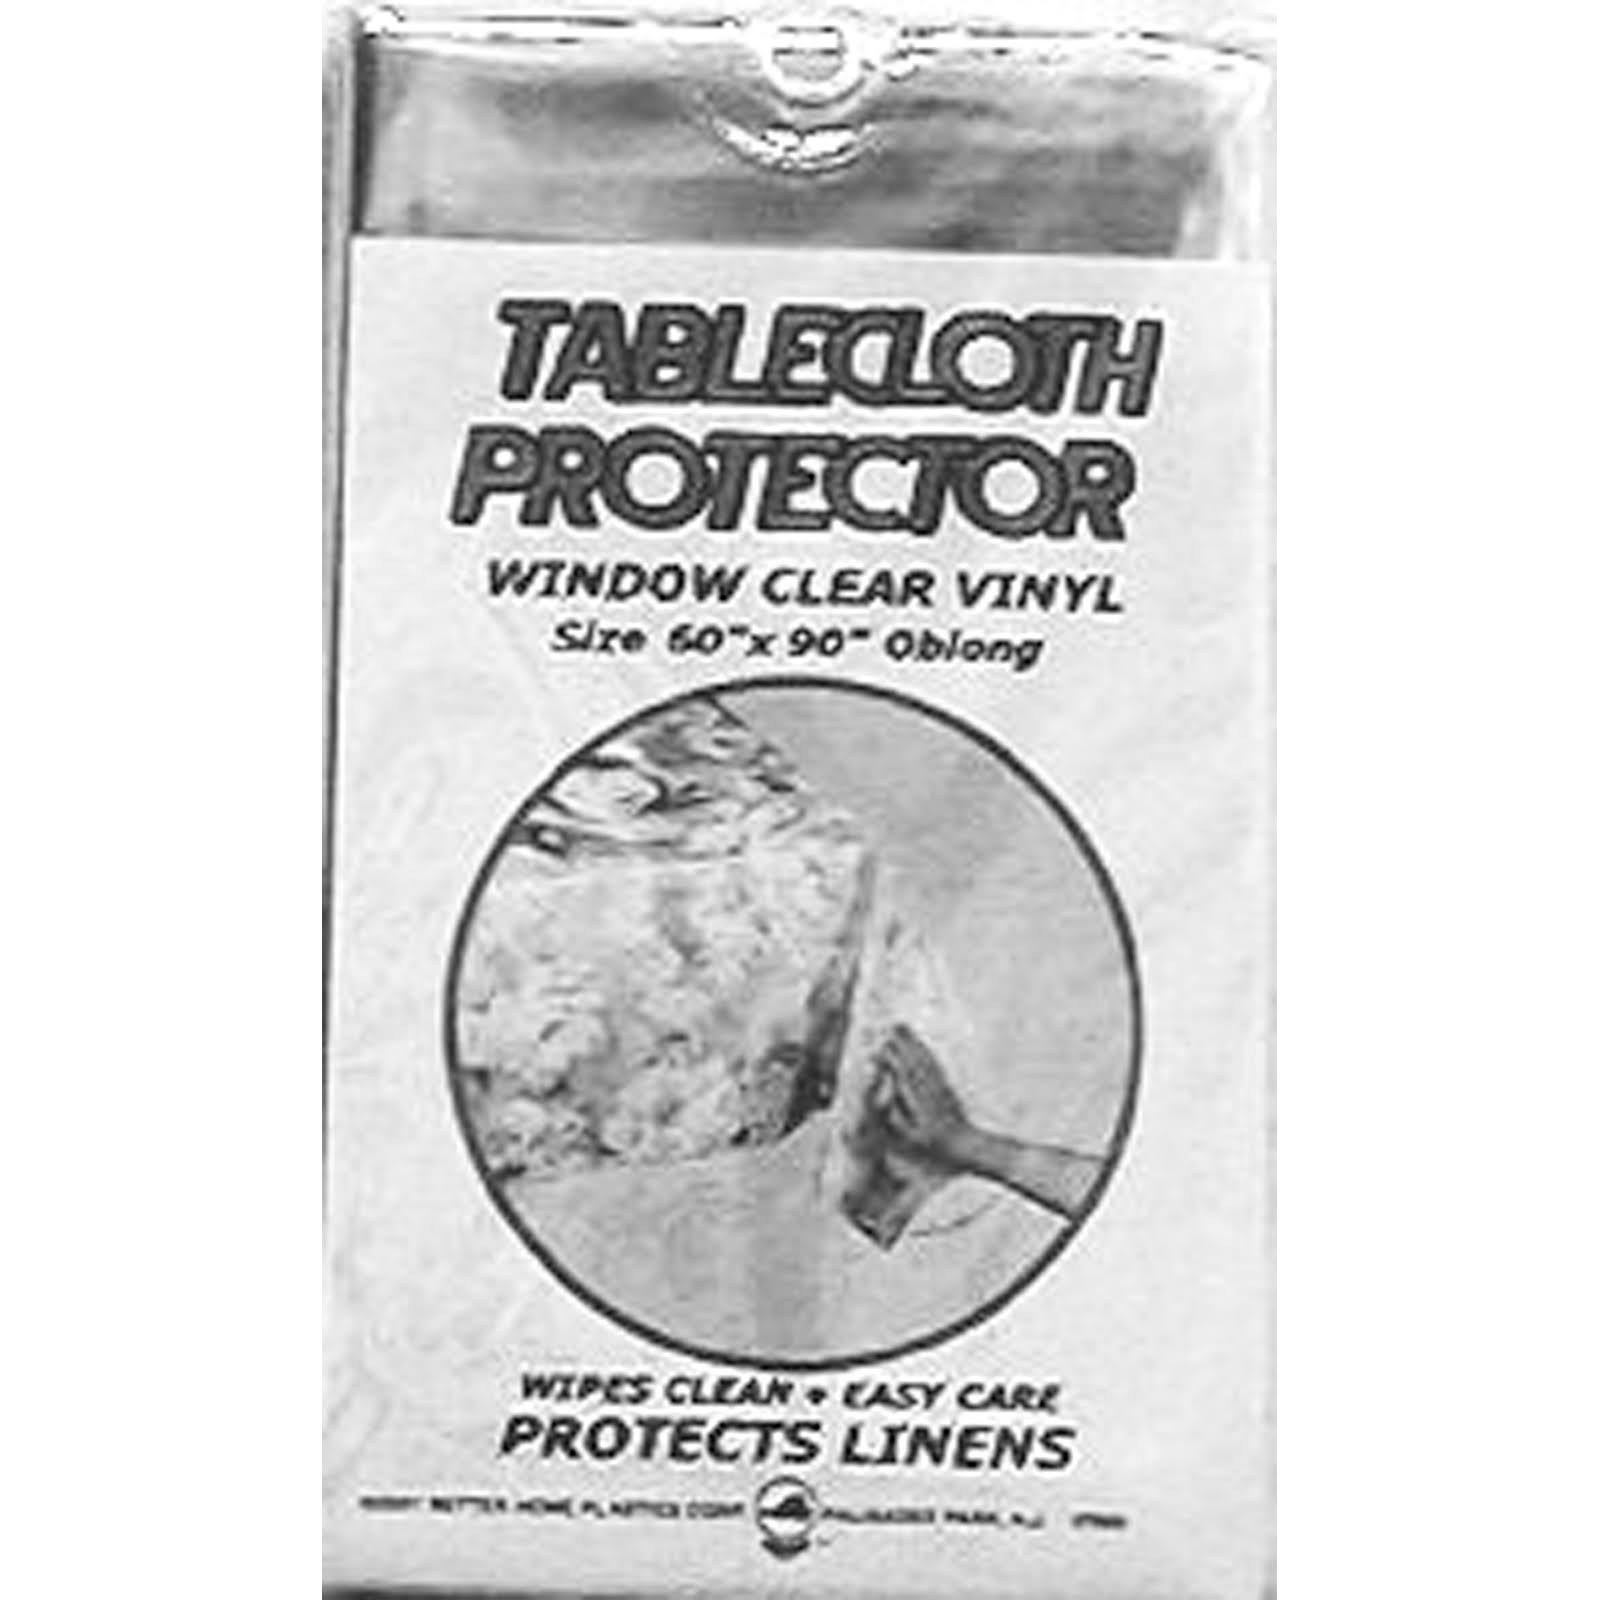 "Vinyl Tablecloth Protector Wipes Clean Protect Linens 70"" Round"